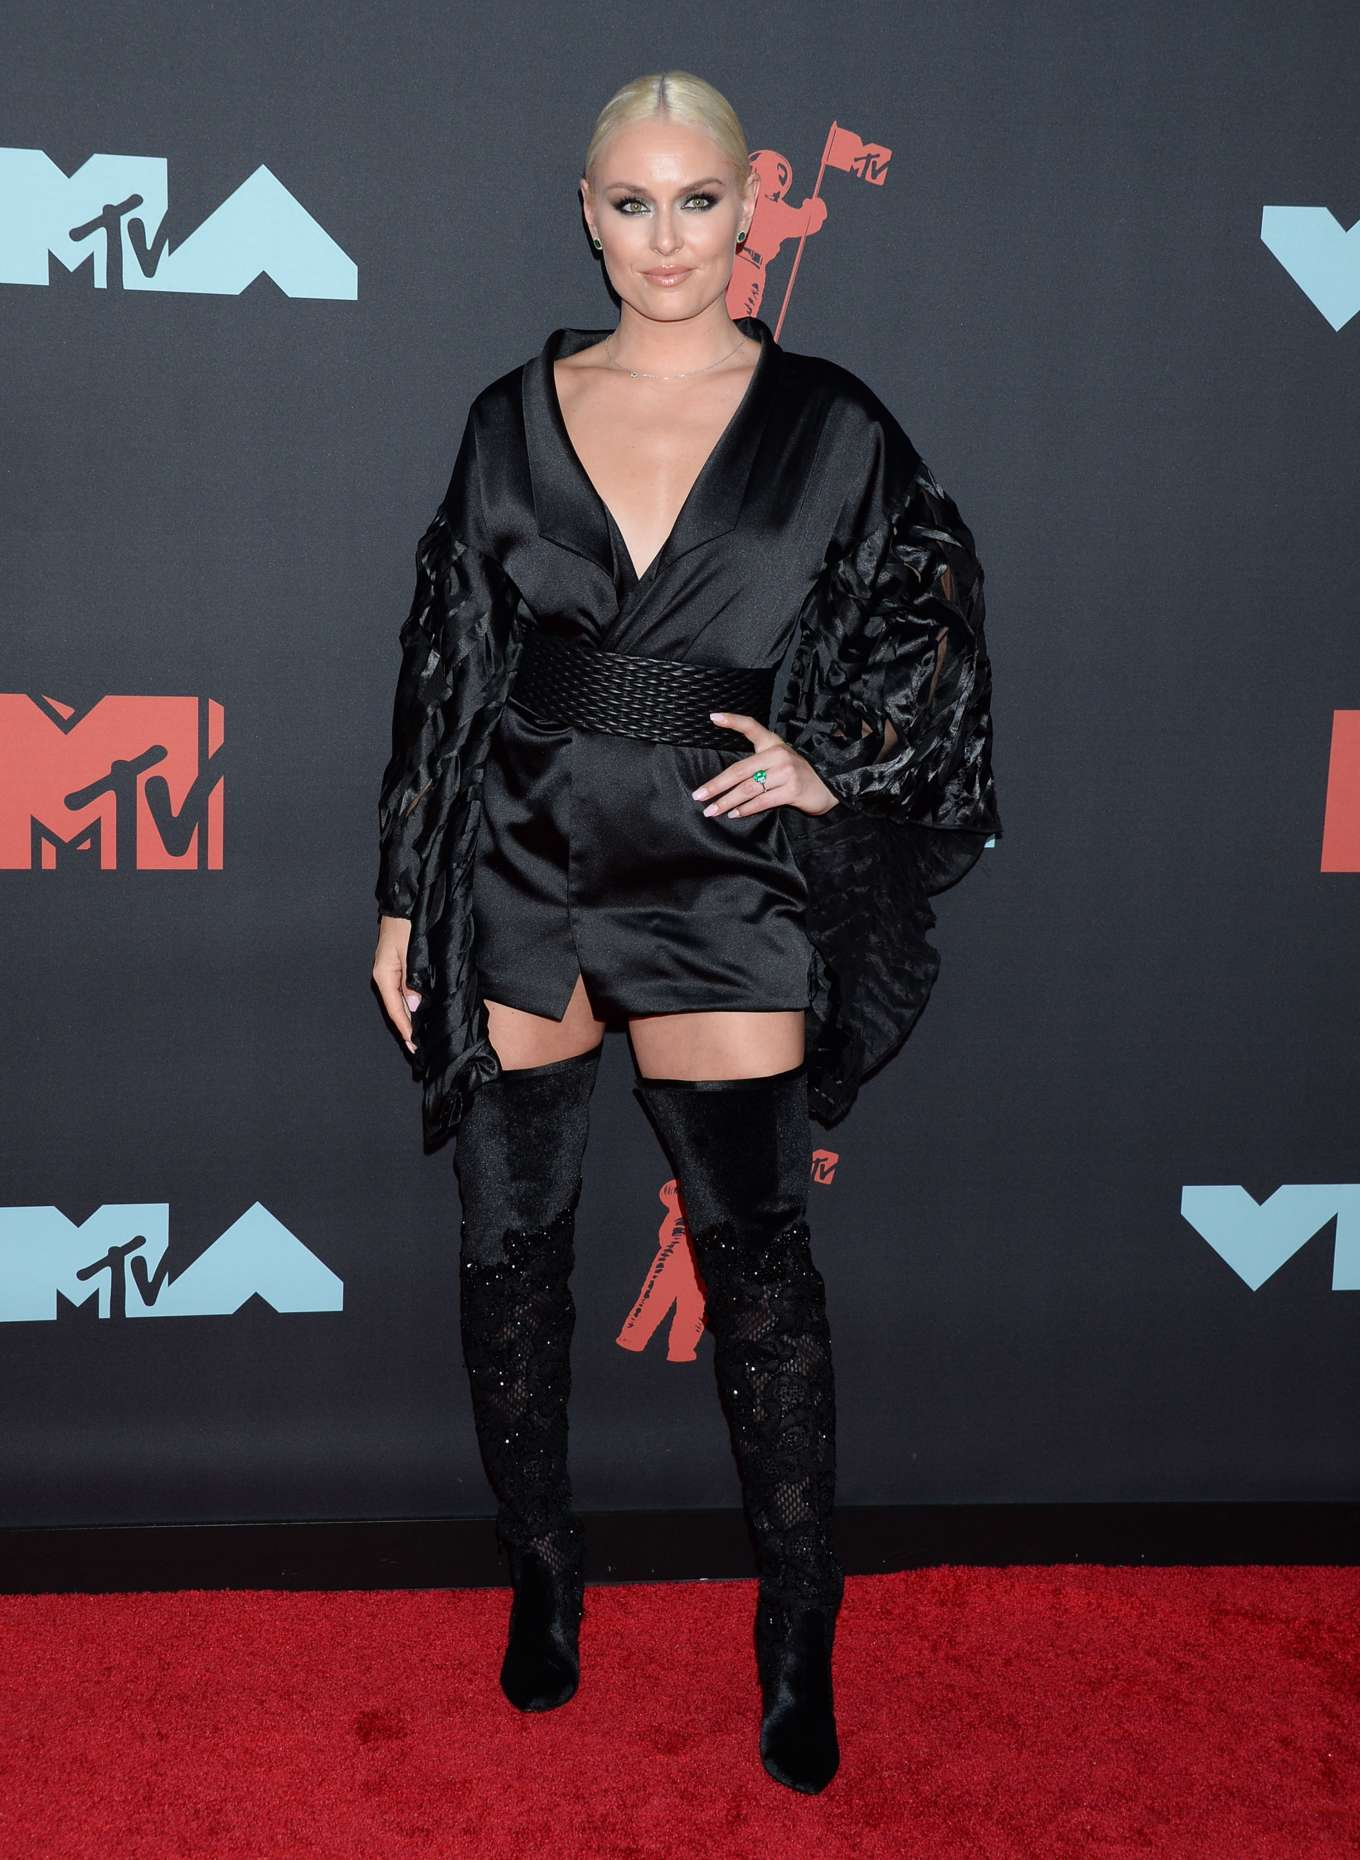 Lindsey Vonn - 2019 MTV Video Music Awards at Prudential Center in New Jersey